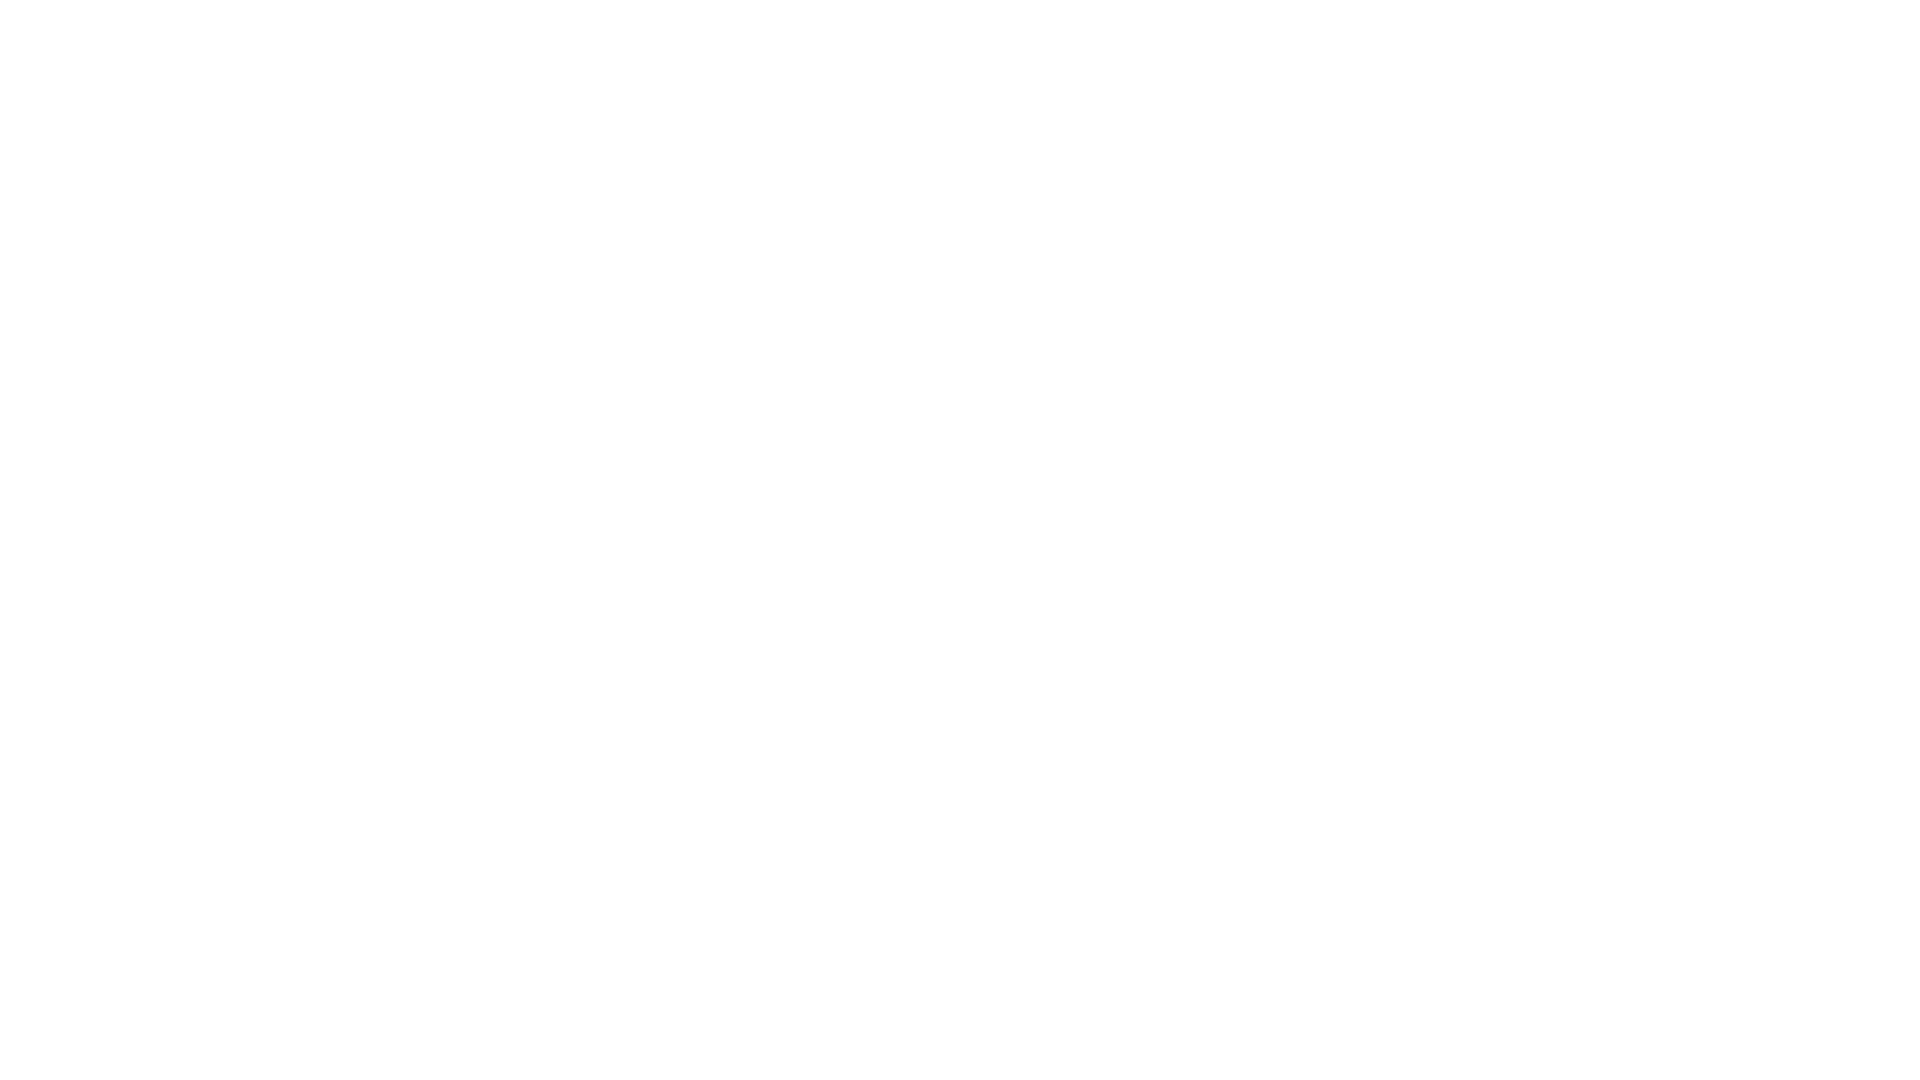 Brexit Strategy